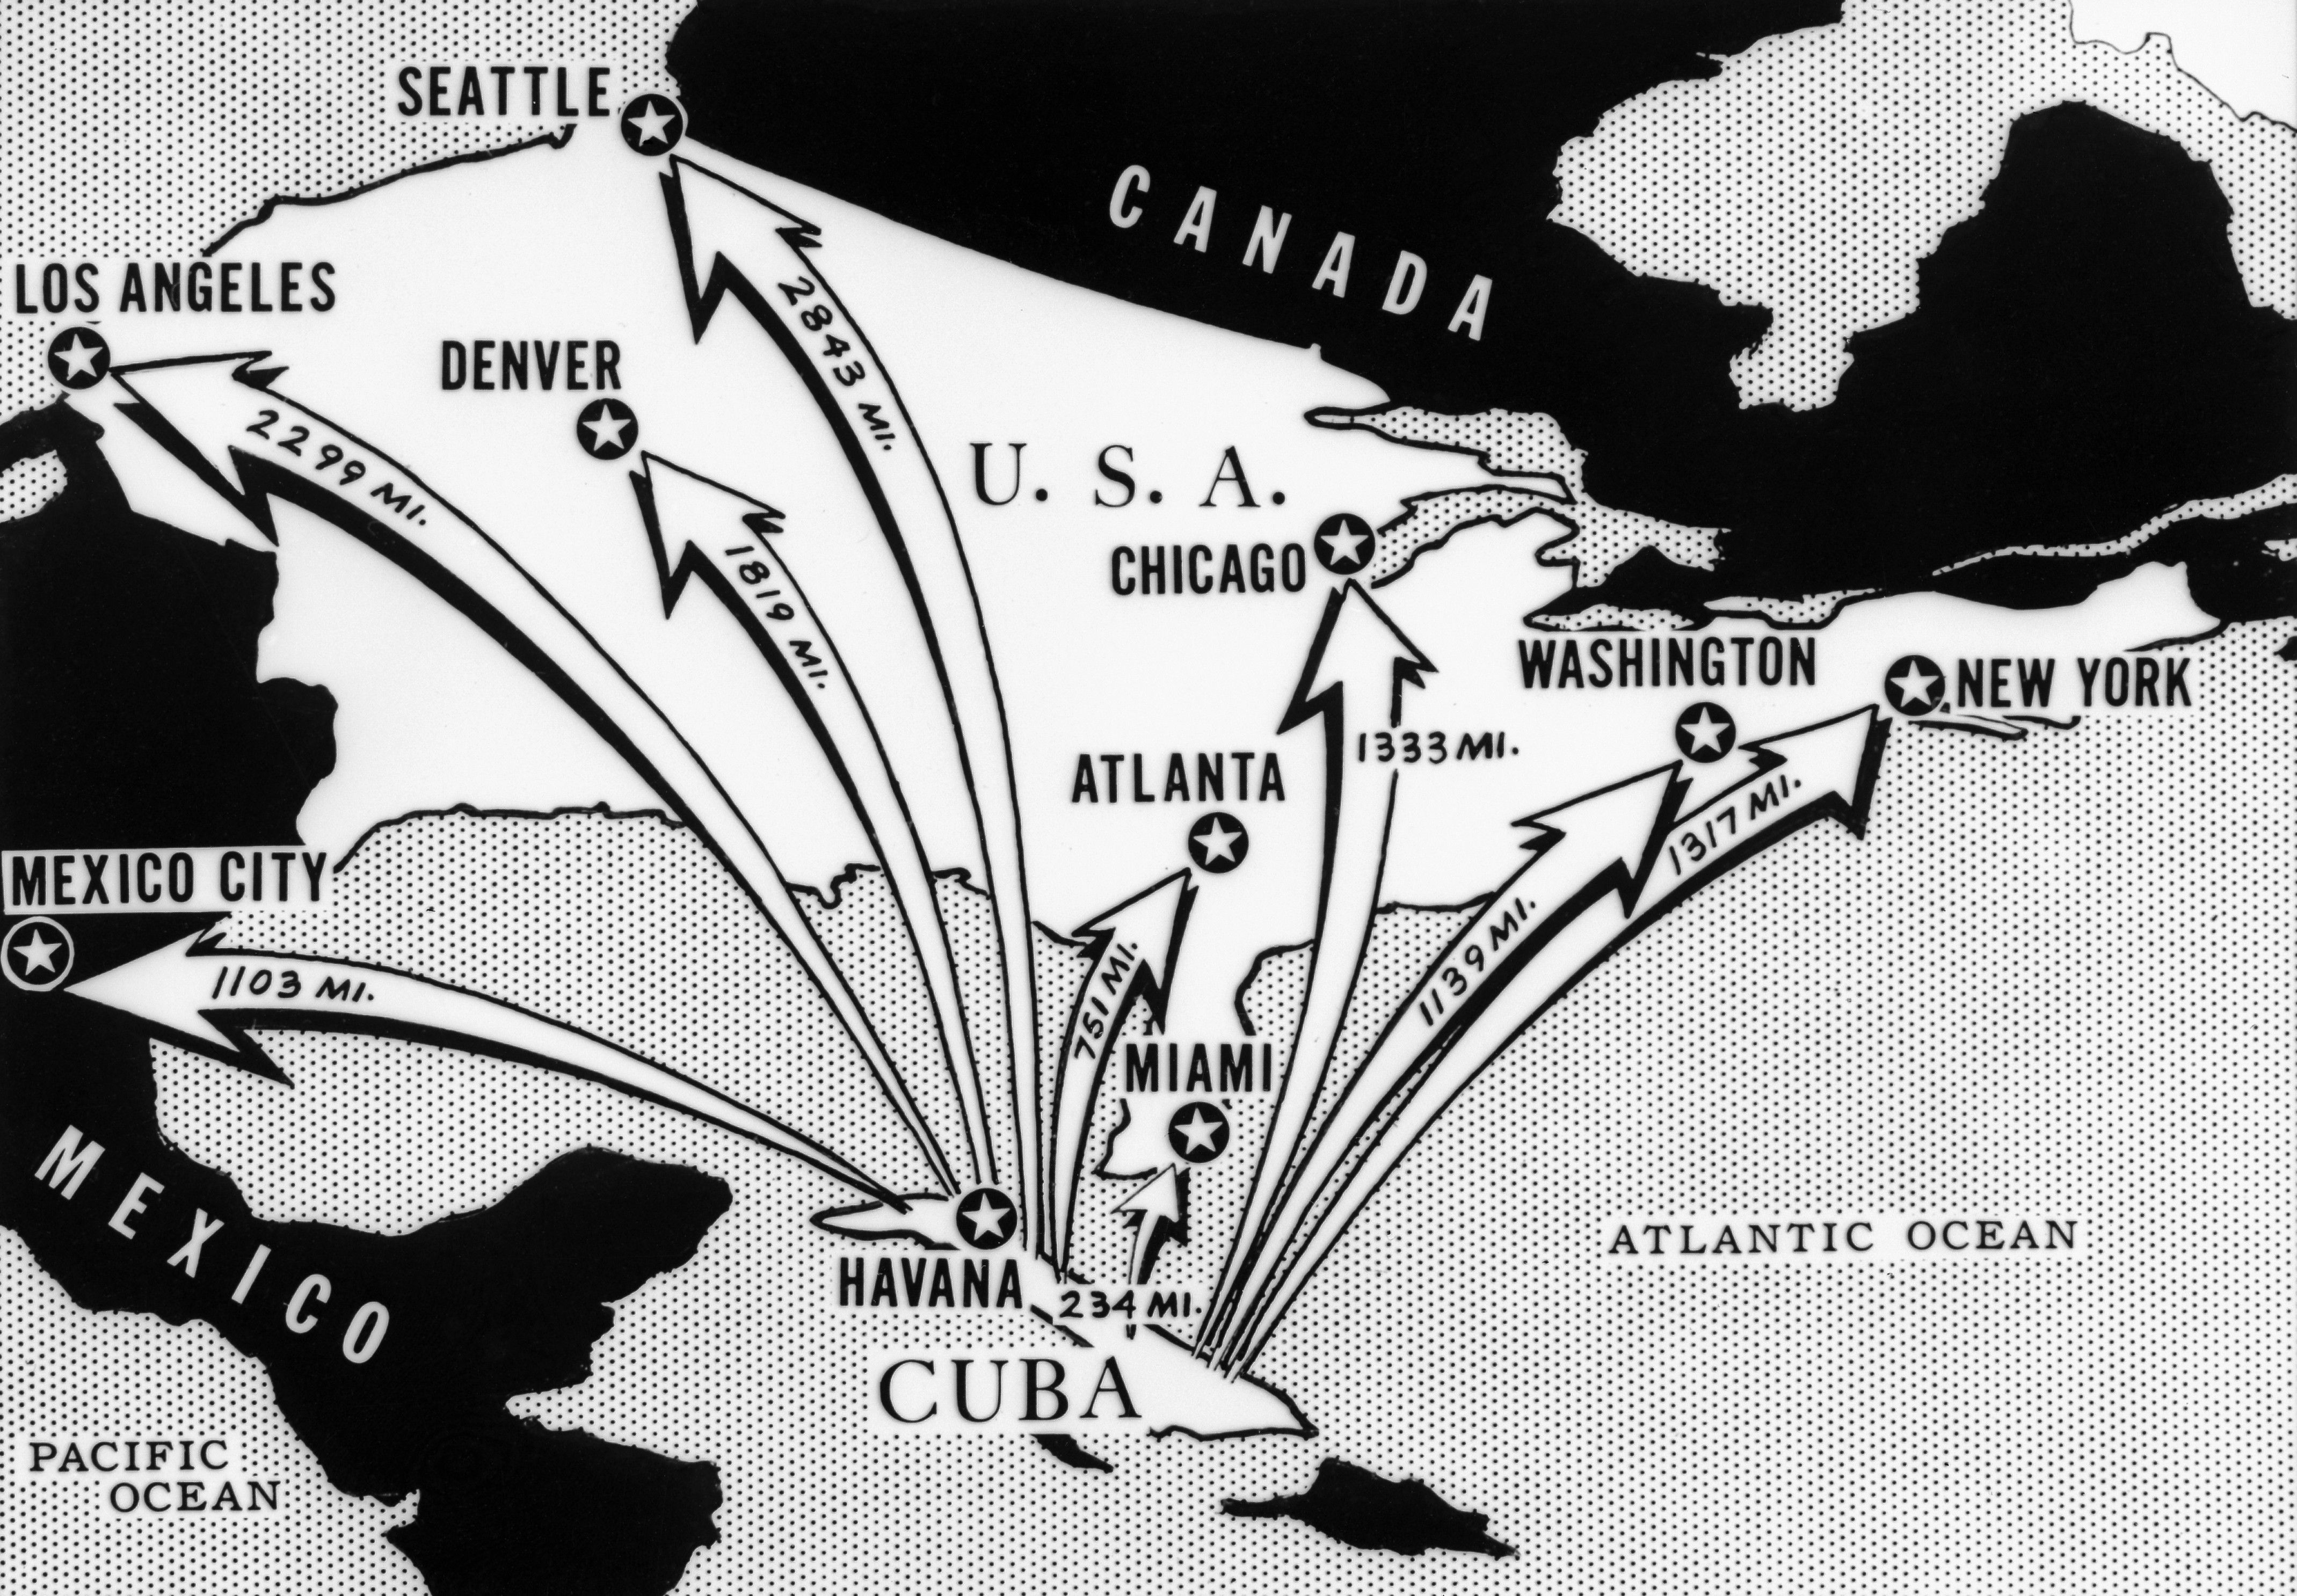 In October Americans Were Terrified Over Soviet Missiles In Cuba As This Newspaper Map Showing Distances Between Cuba And Major North American Cities